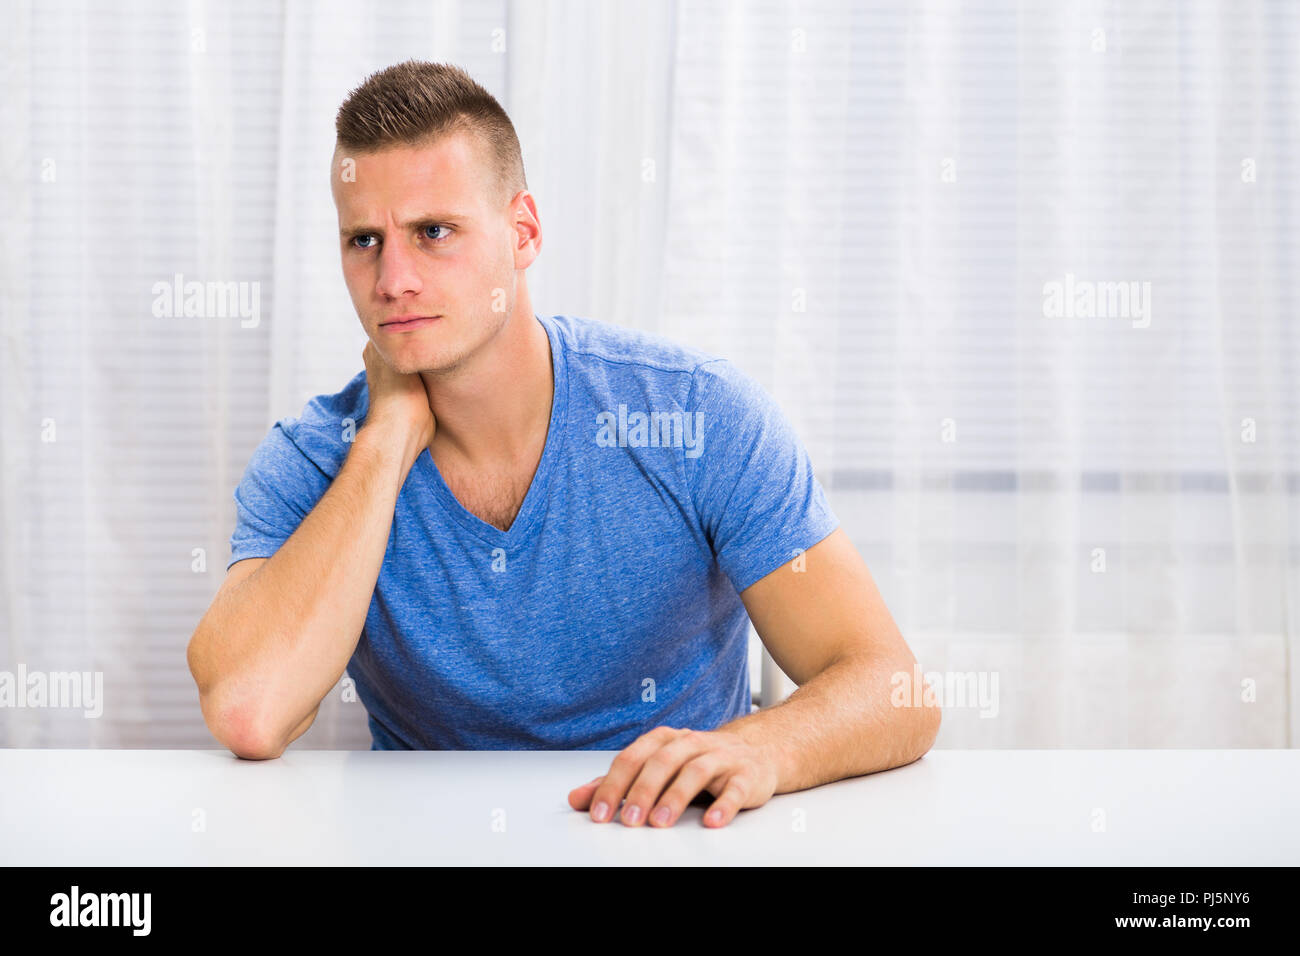 Young man is having neck pain. - Stock Image